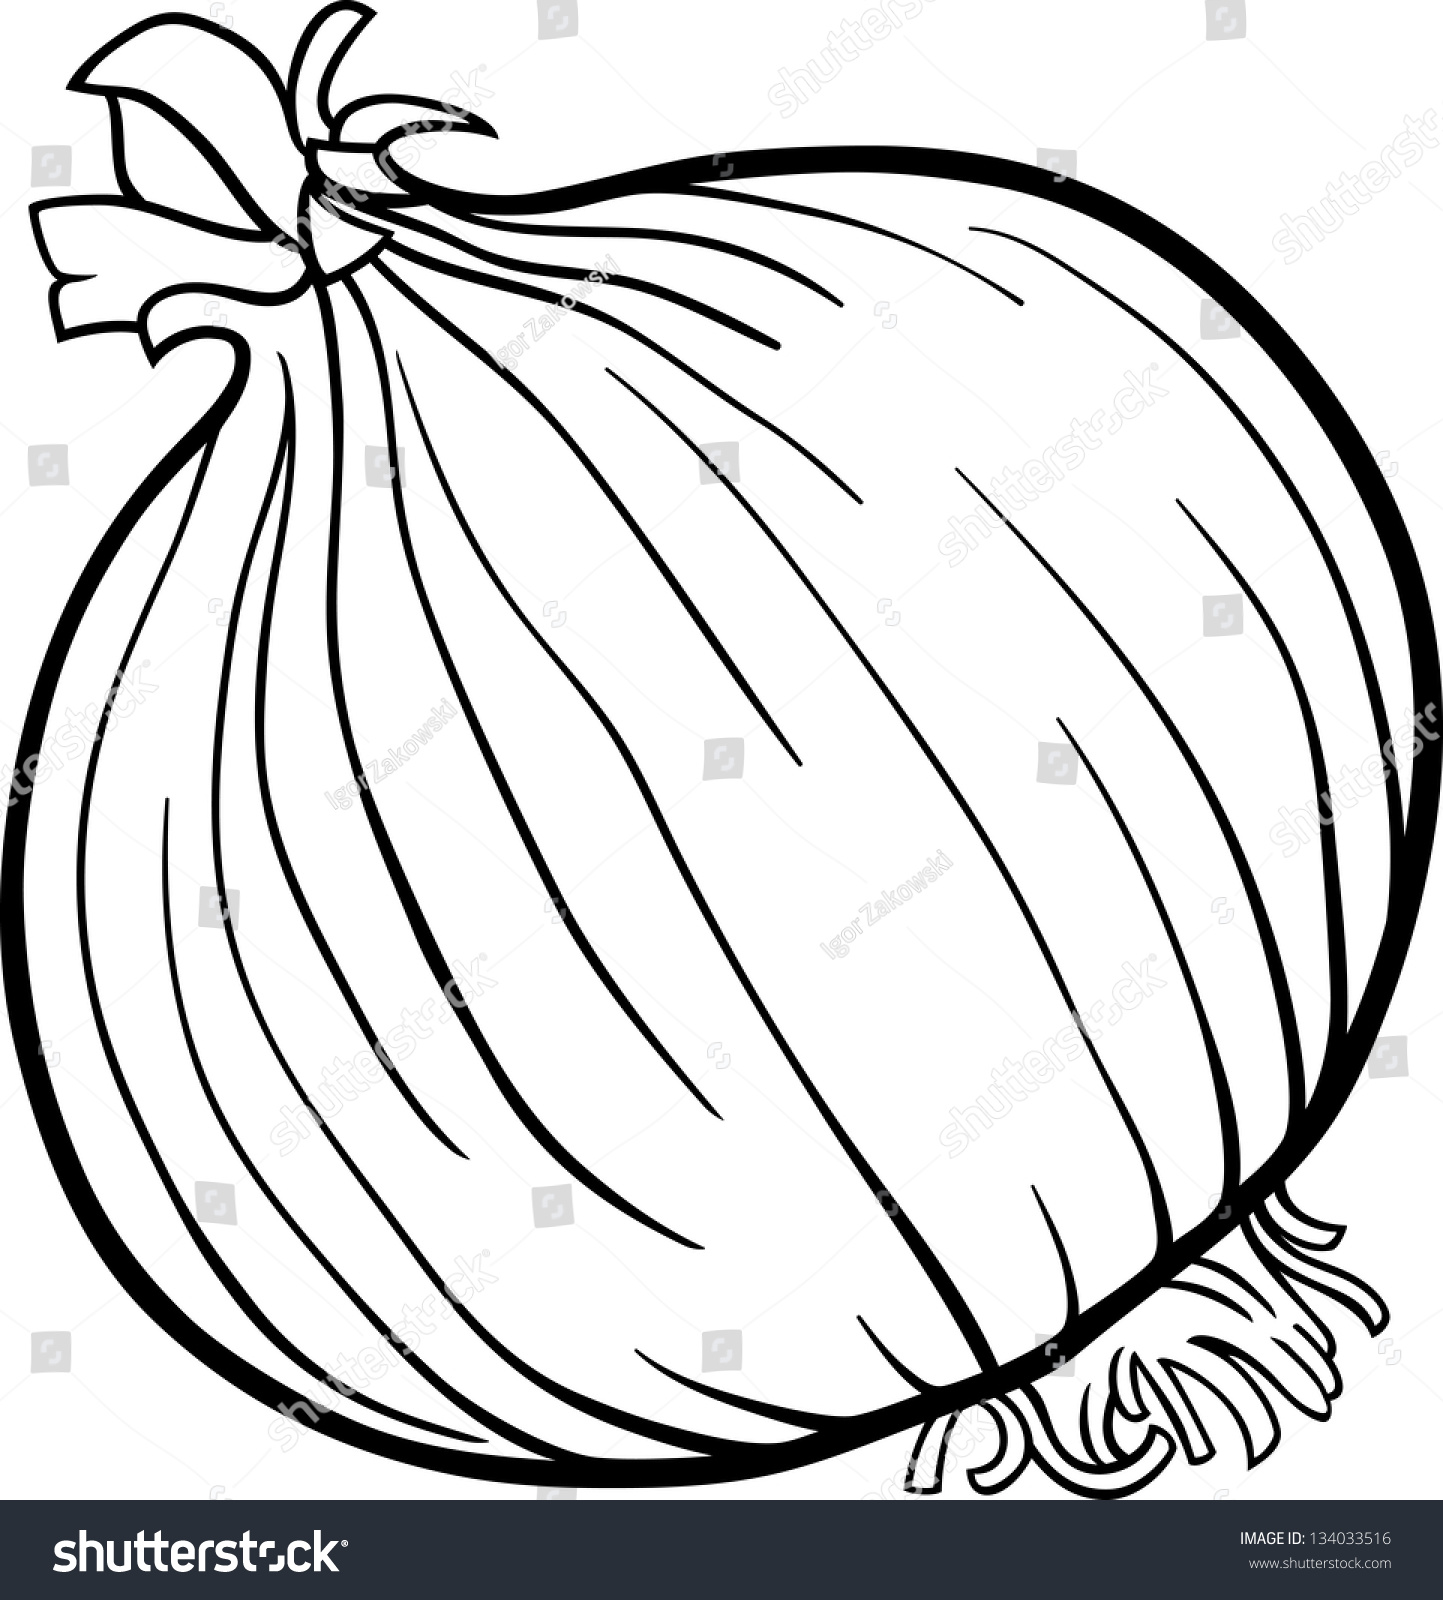 Black White Cartoon Illustration Onion Root Stock Vector 134033516 ...